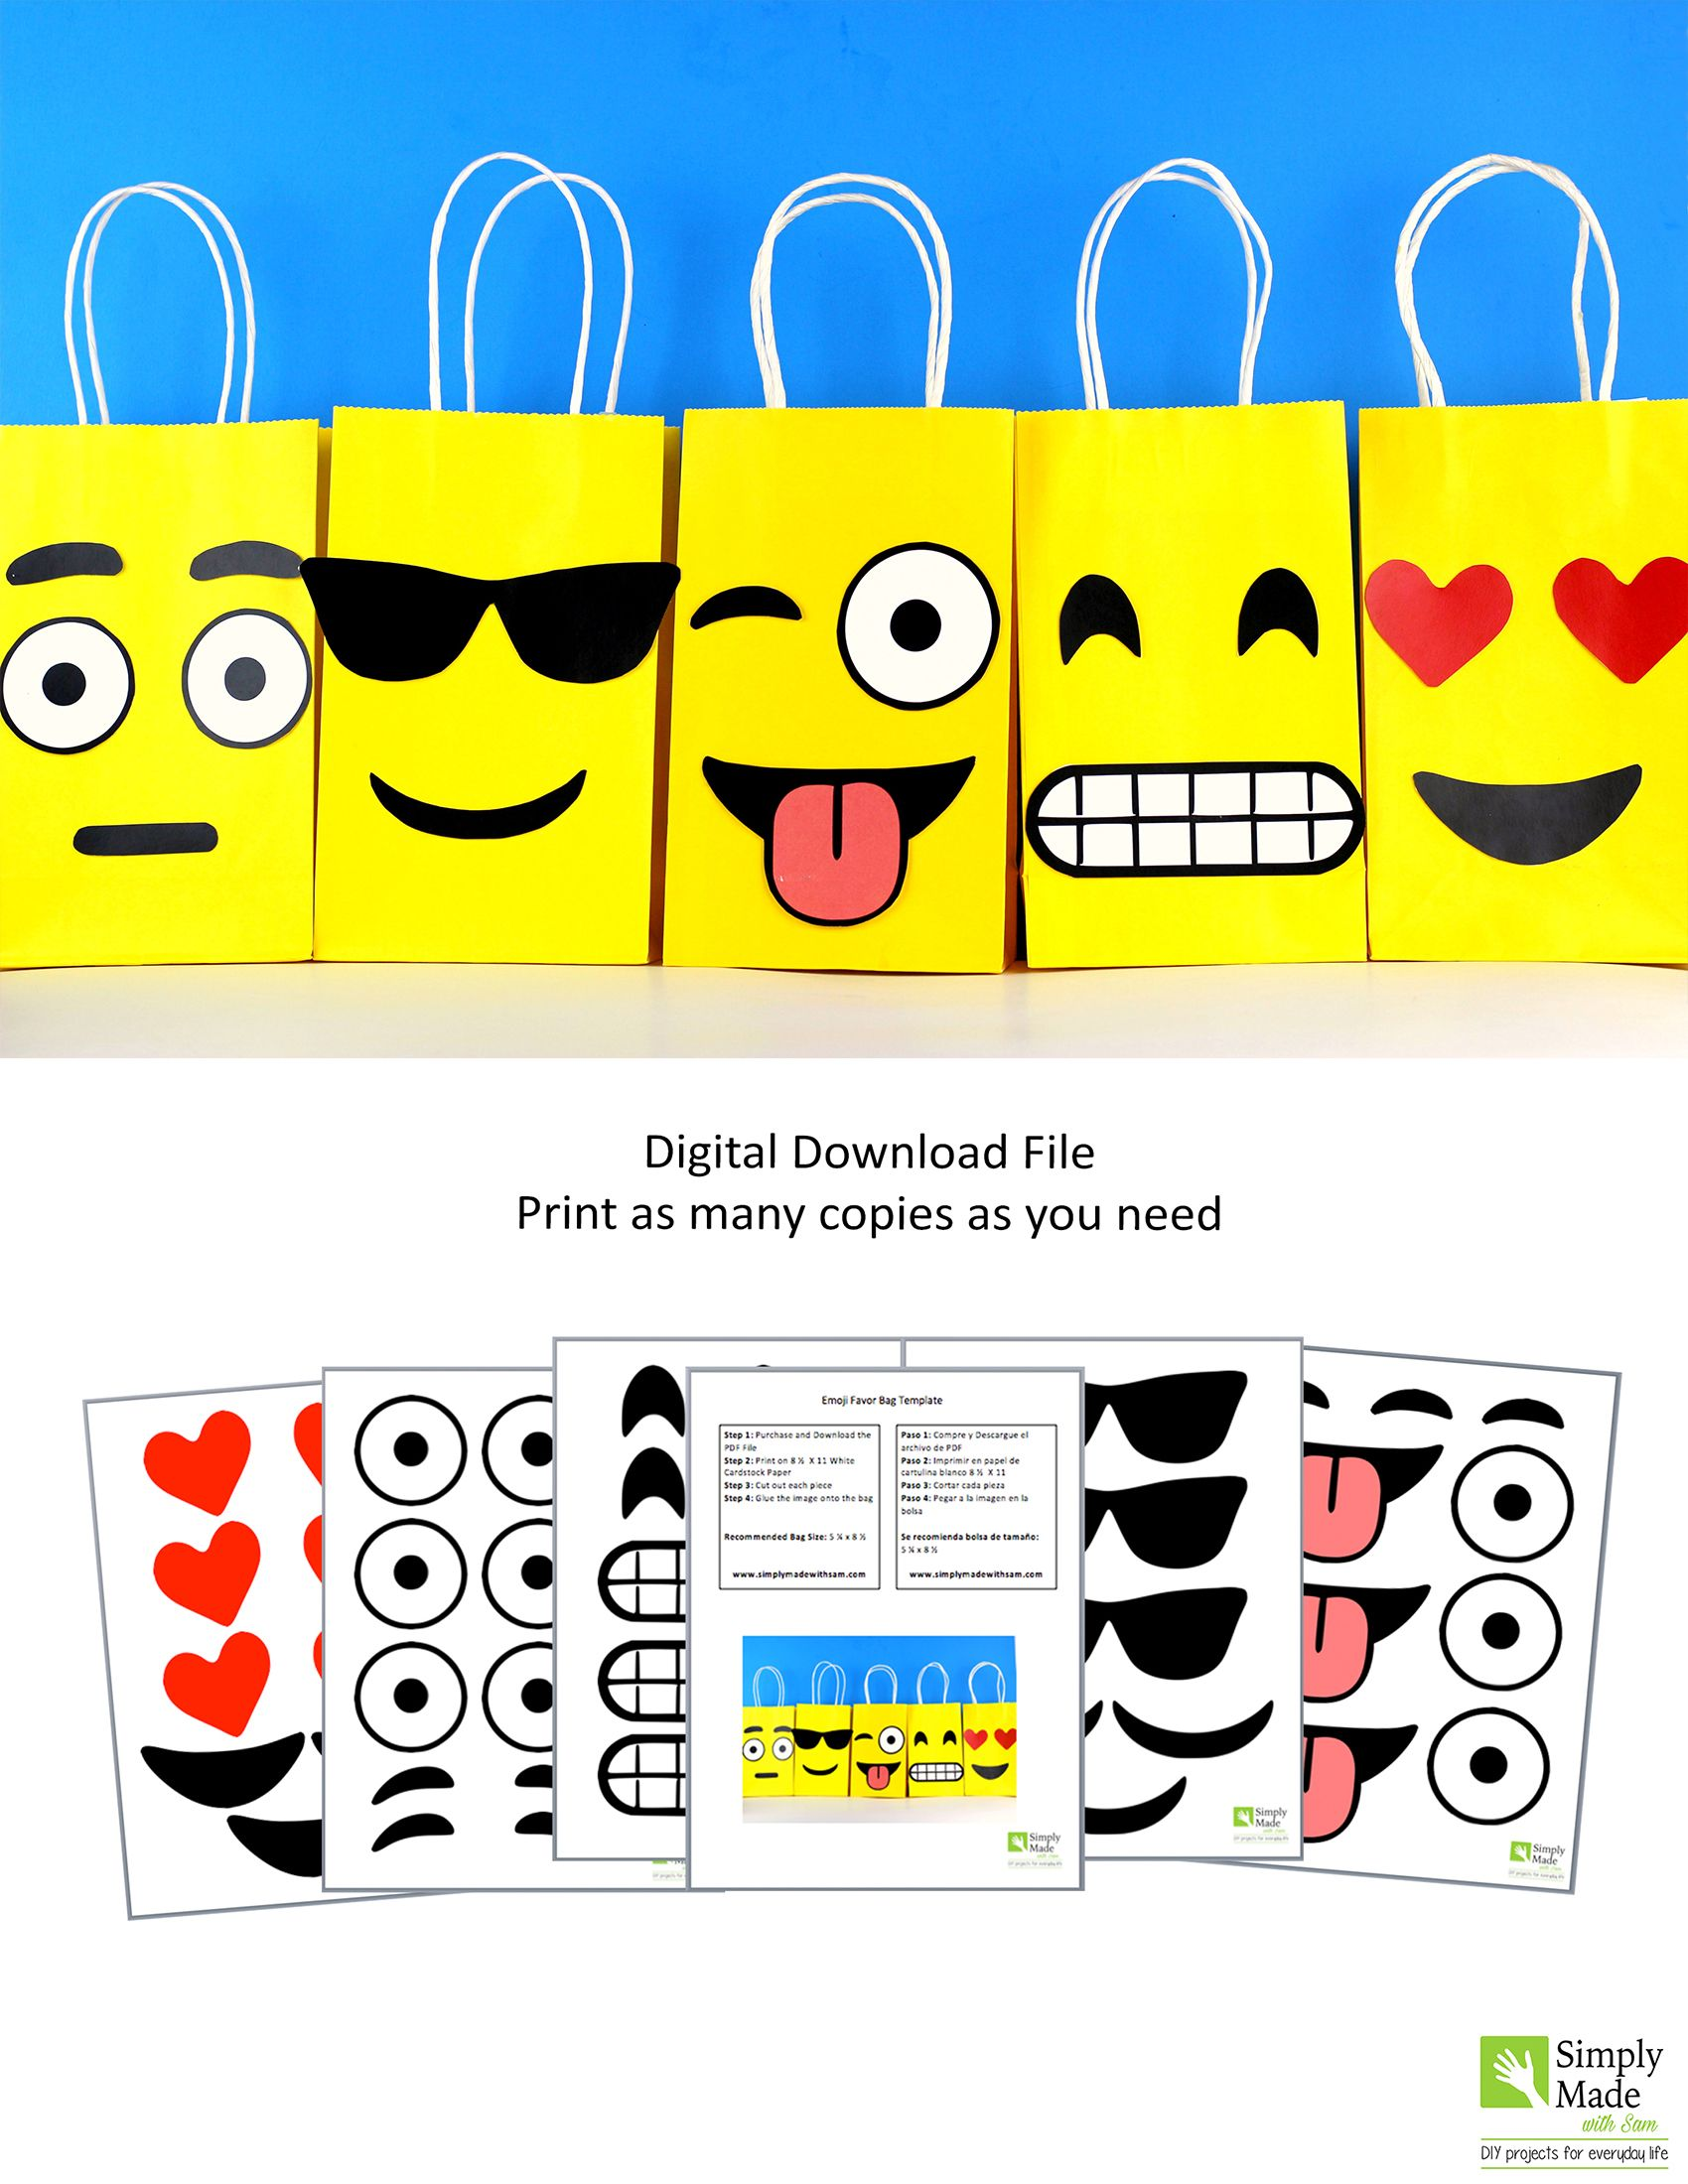 DIY Emoji Favor Bags Simply Download Print Cut And Paste As Many Copies You Need